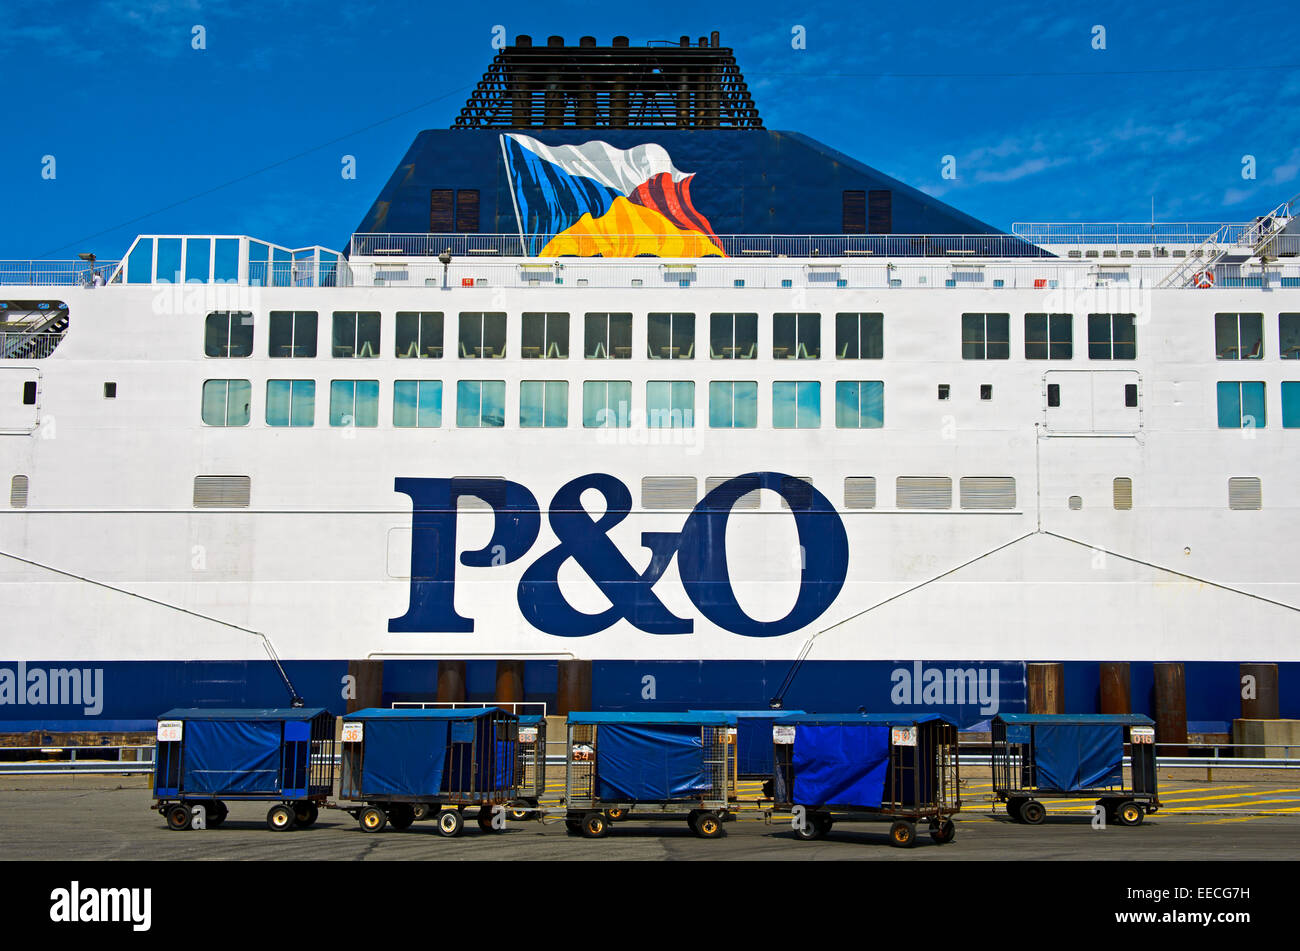 Lateral view of a cross-channel ferry of the shipping company P&O ferries in the port of Calais, France - Stock Image